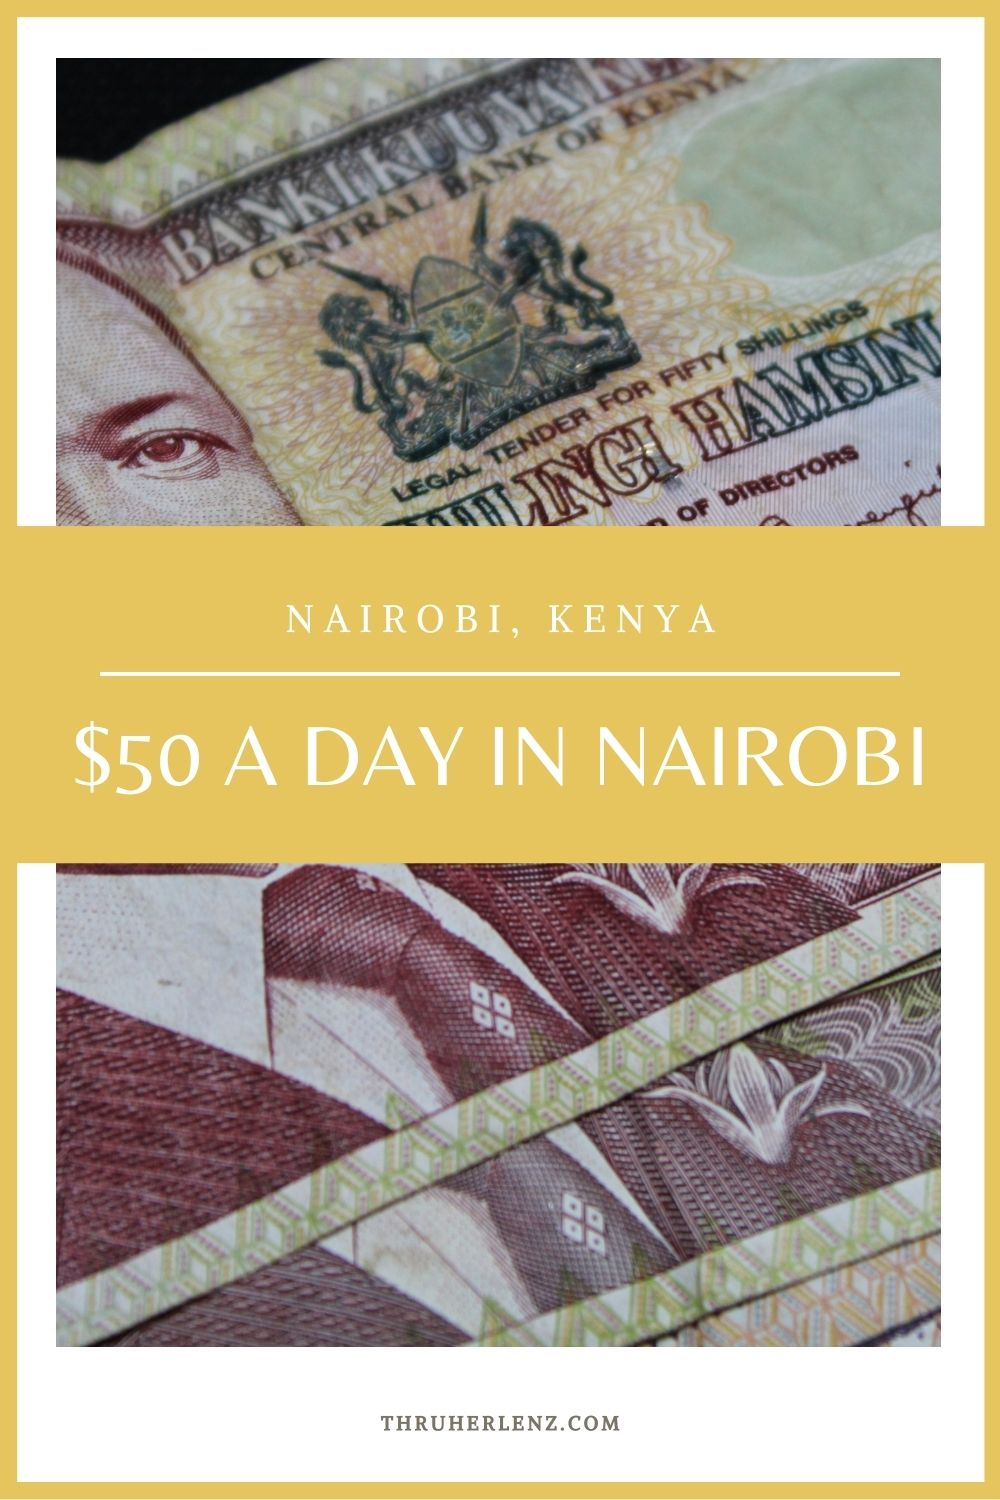 8 Awesome Things $50 a Day Can Get You in Nairobi